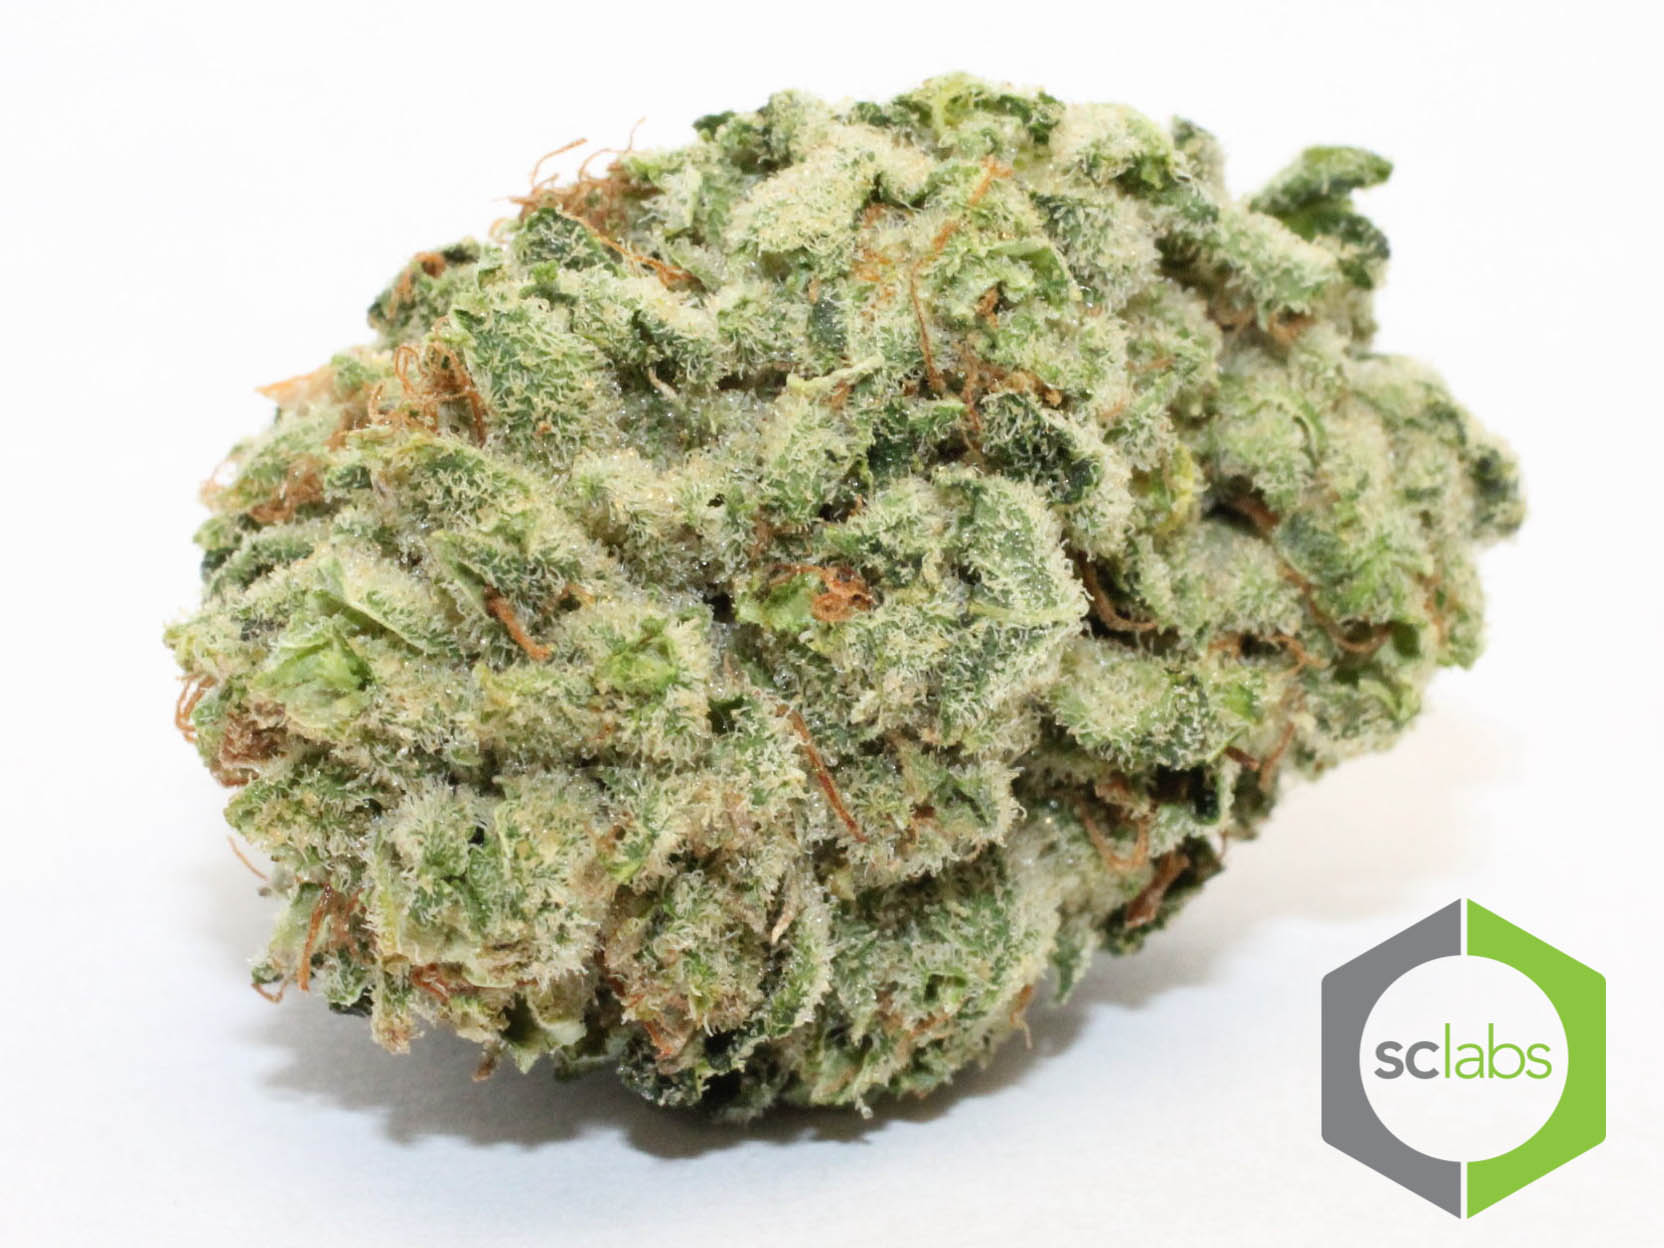 Wedding Cake Marijuana  Order Weed Online From Green Car Delivery